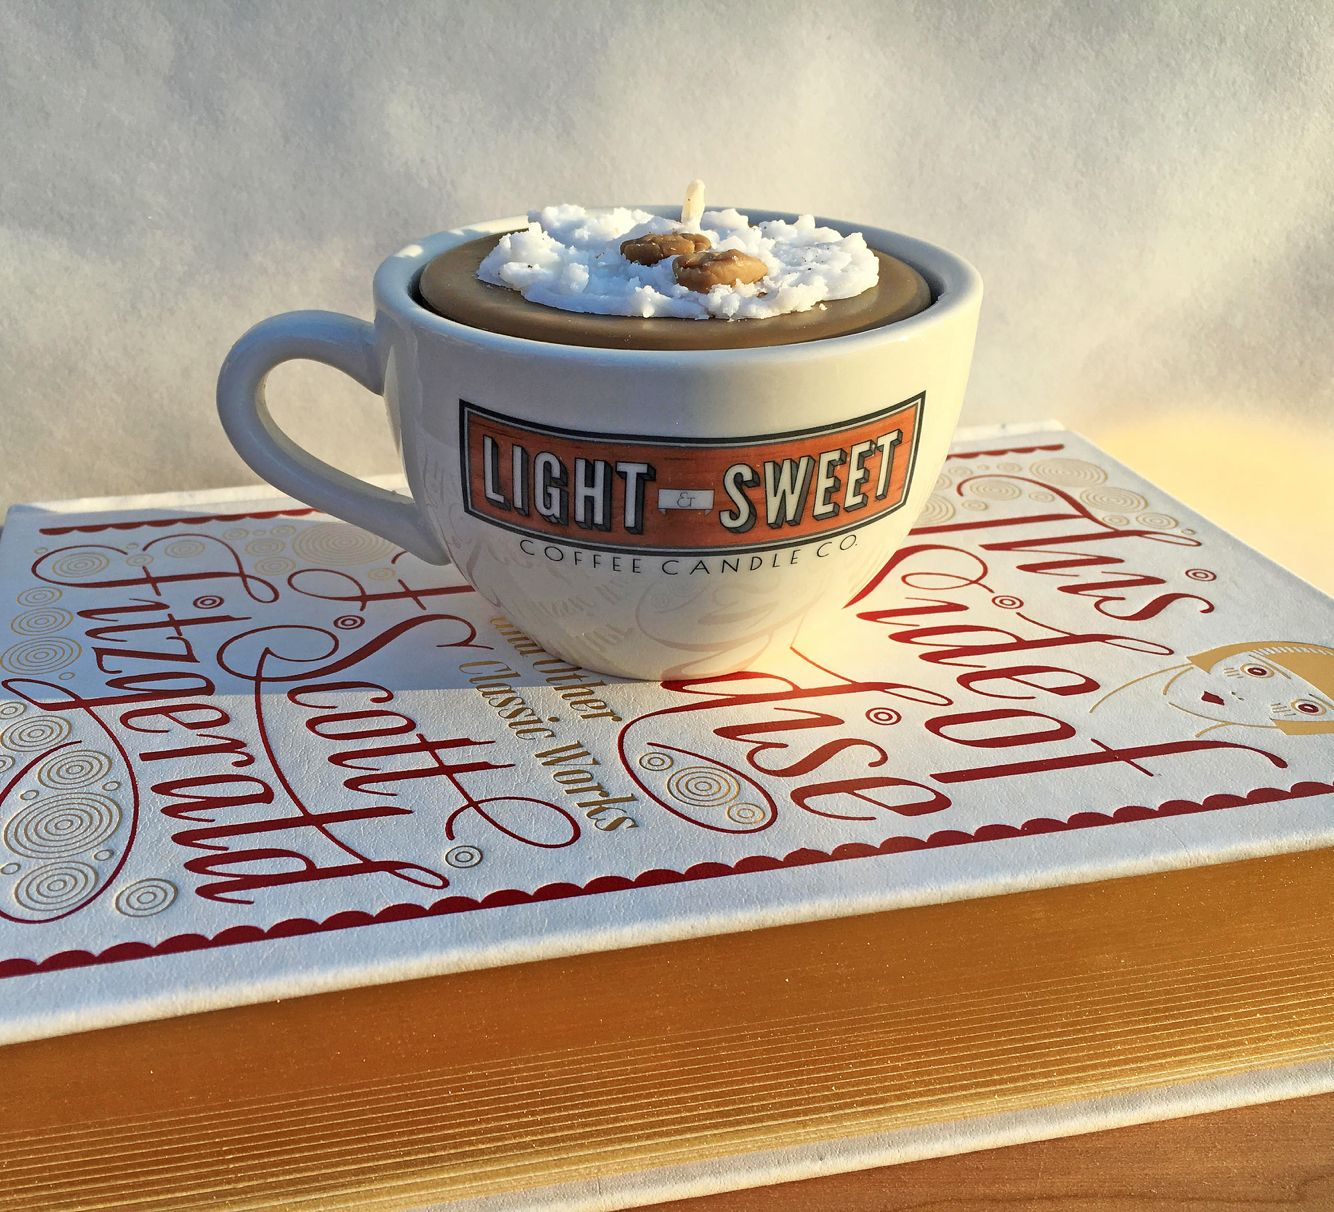 About Light Sweet Coffee Candle Co